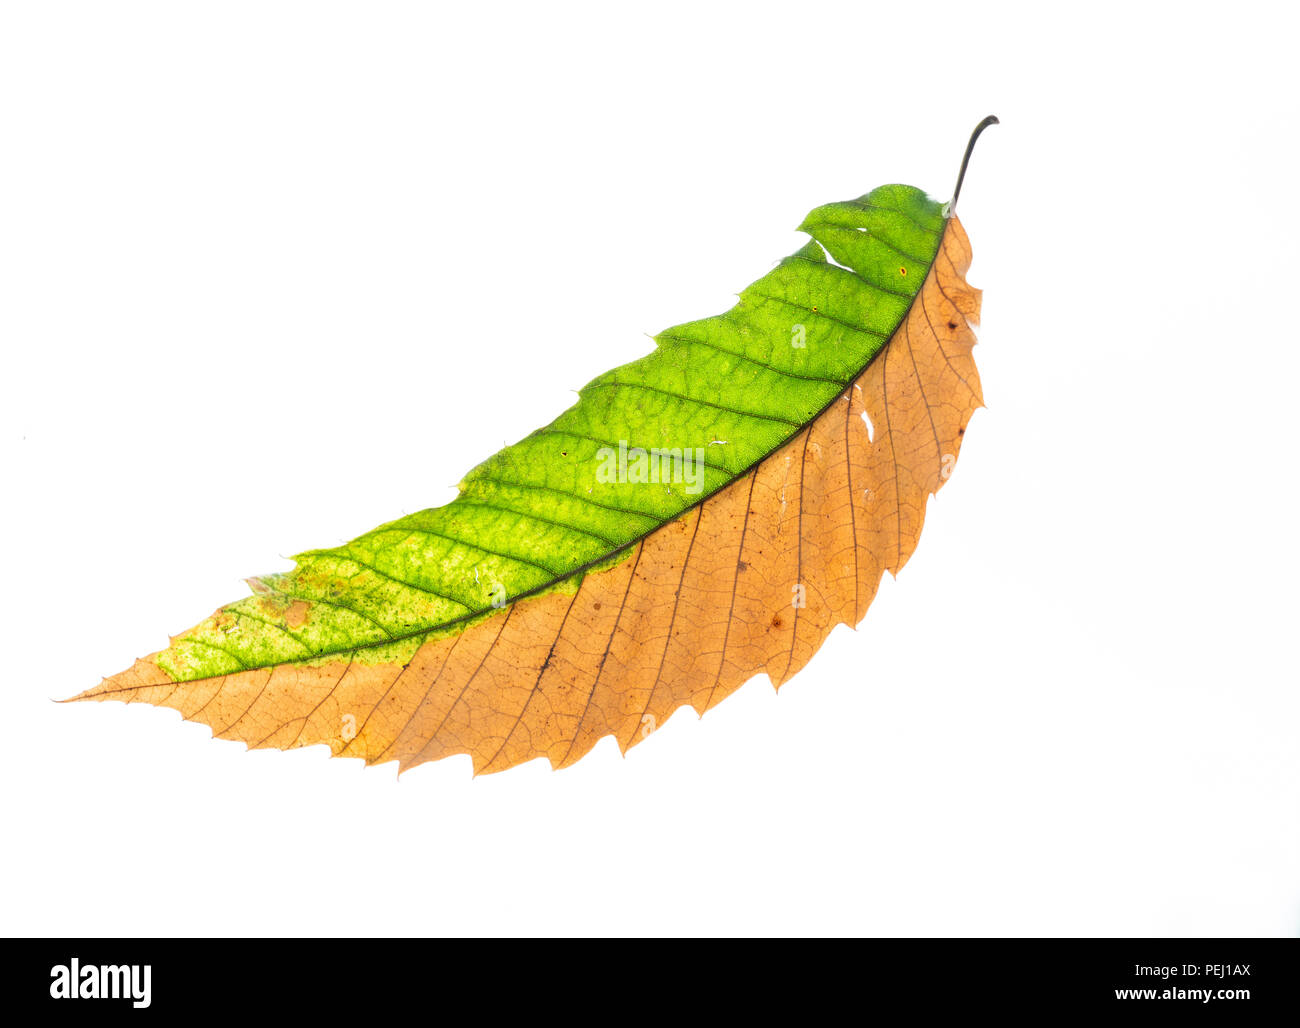 Bicoloured leaf of the sweet chestnut tree (Castanea sativa) dropped from the tree after a particularly dry summer. Shot against white to show detail. Stock Photo